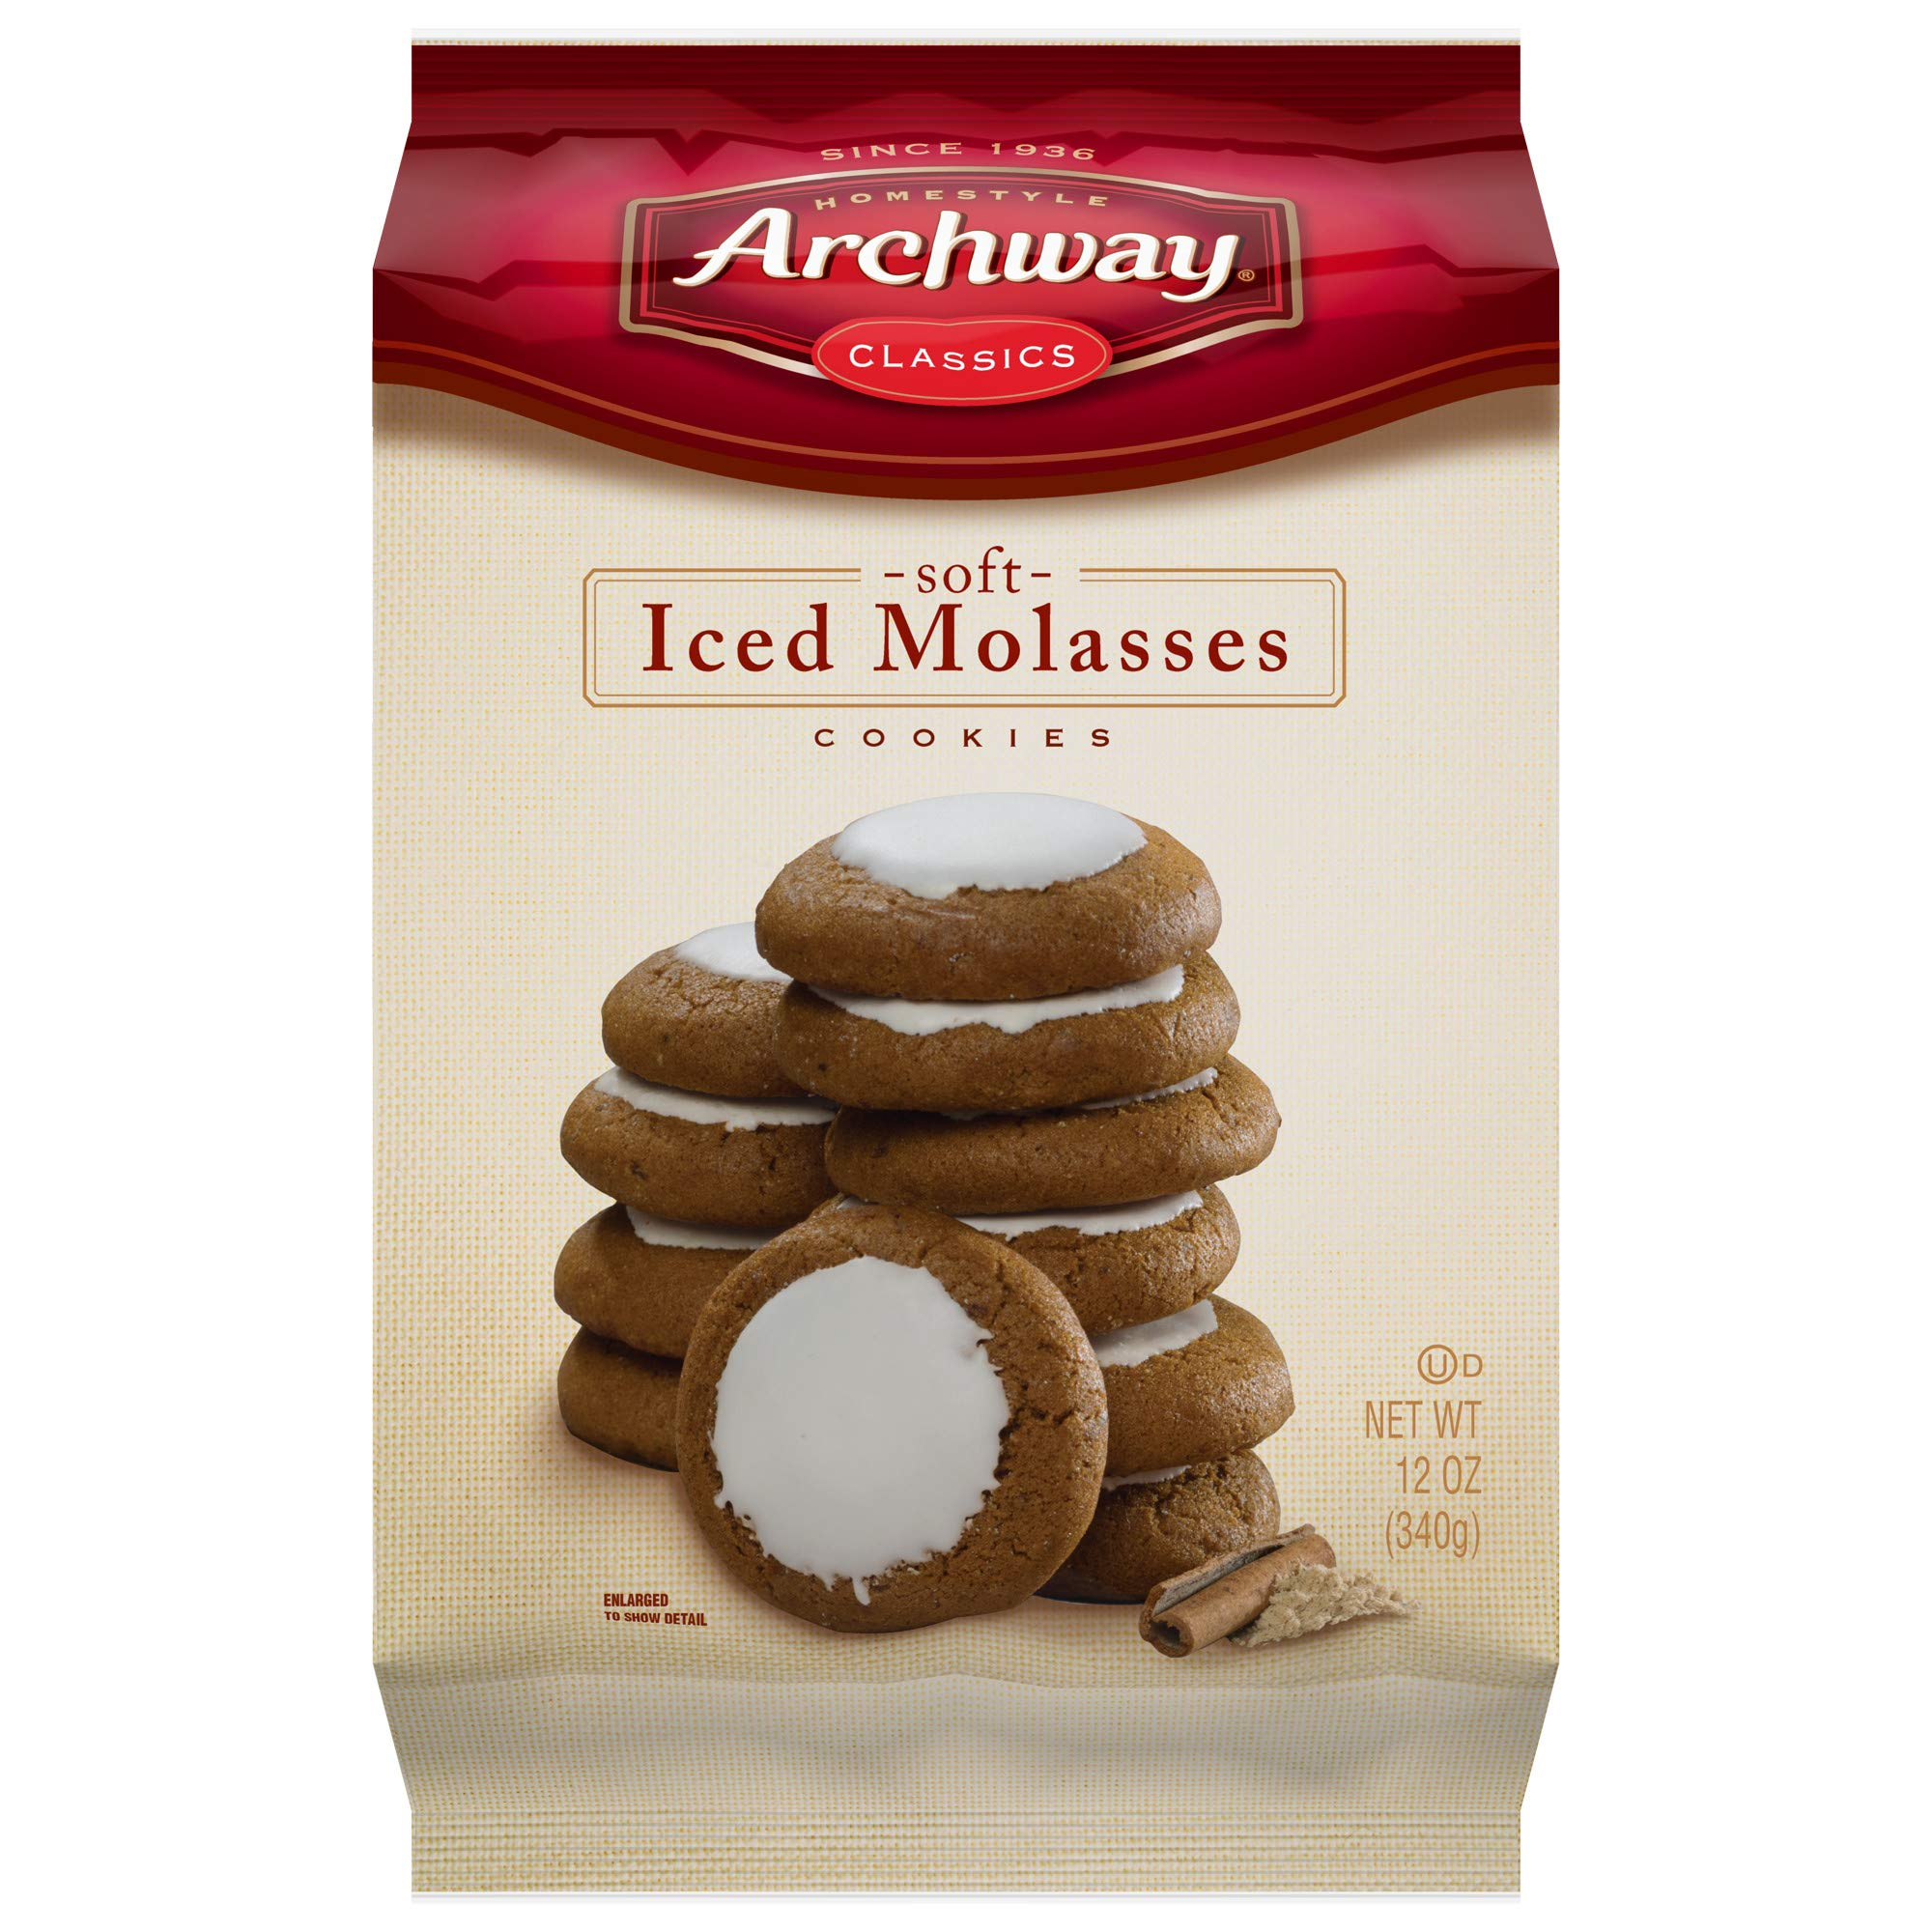 Archway Archway Iced Molasses Cookies